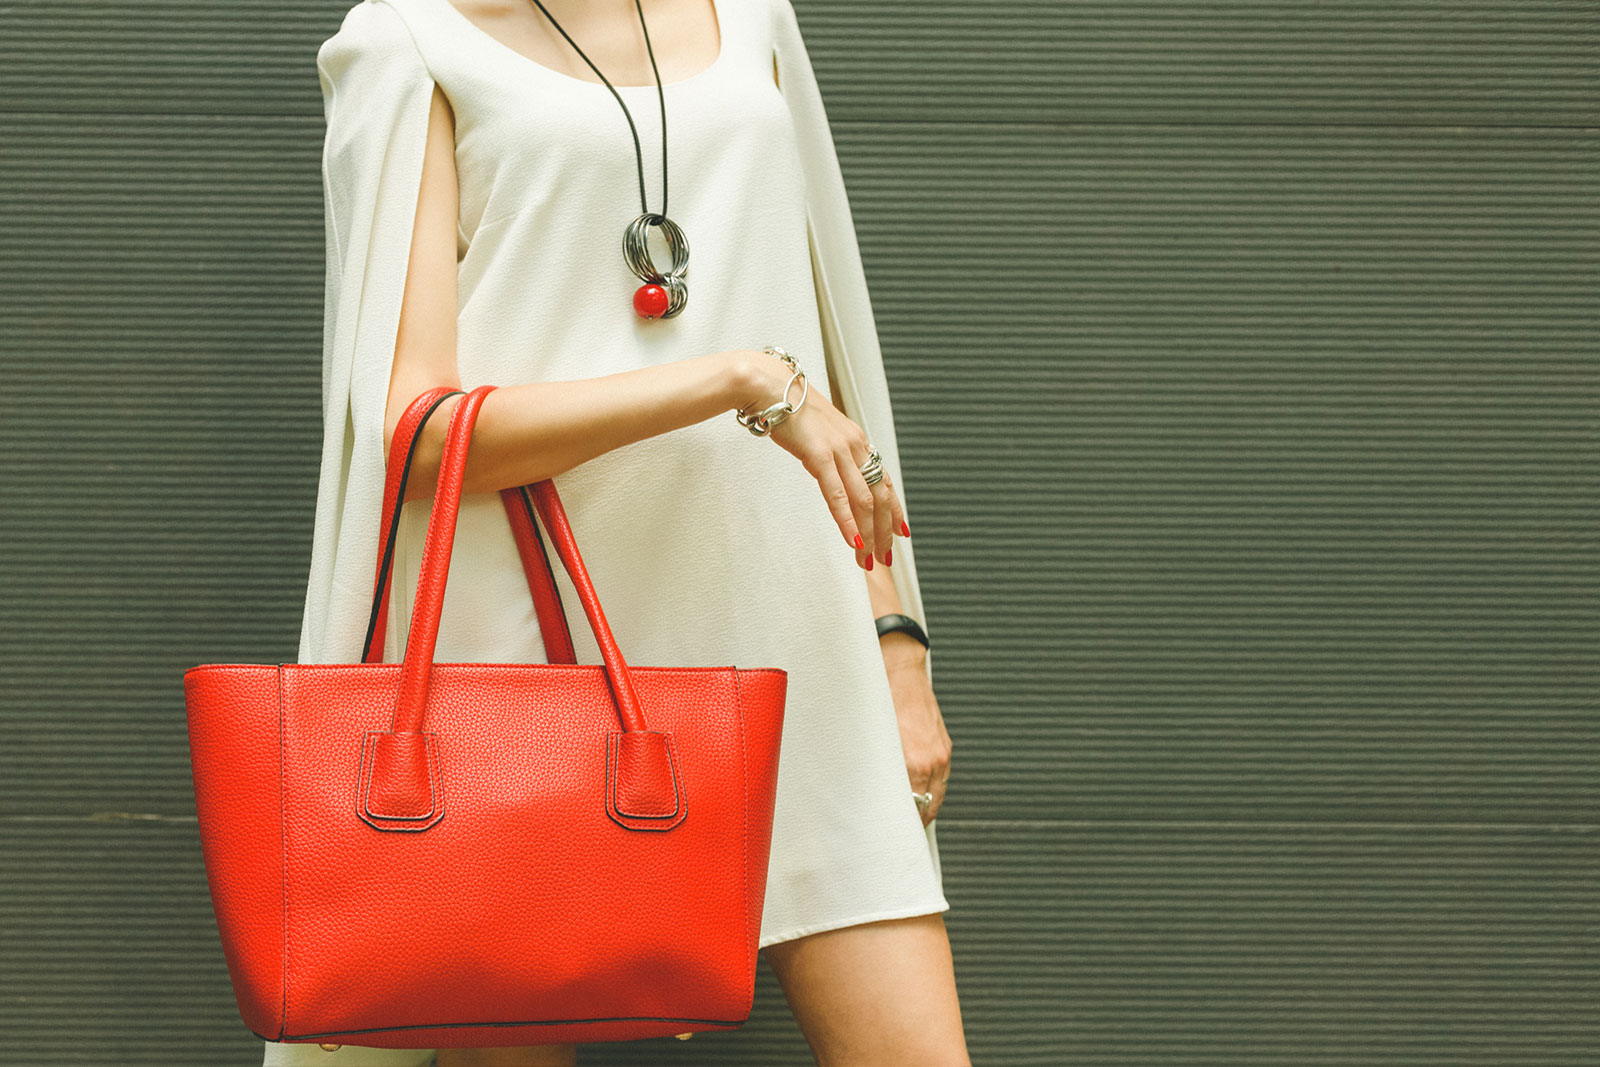 3 Trendy Best Selling Leather Bags You Should Have a Look at